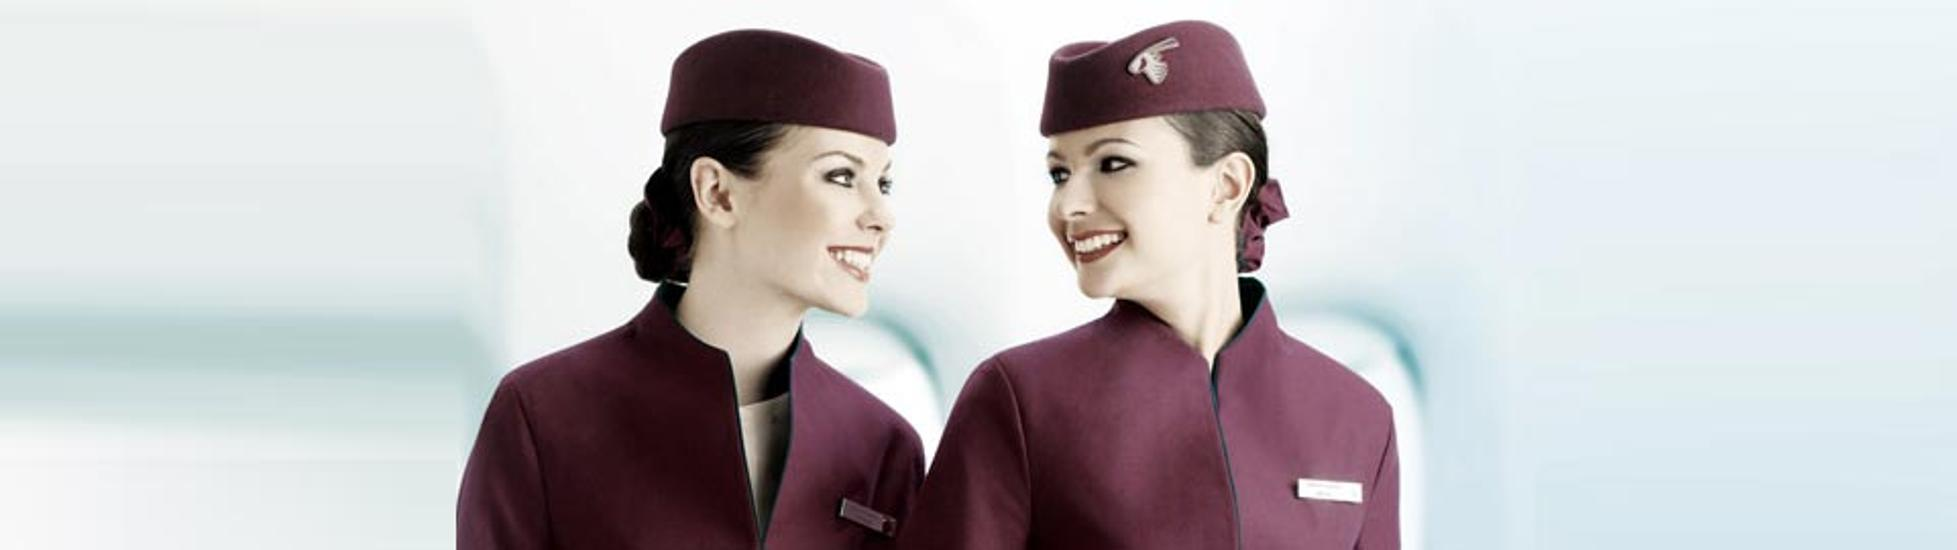 Qatar Airways Is Recruting Cabin Crew In Budapest On 4 February